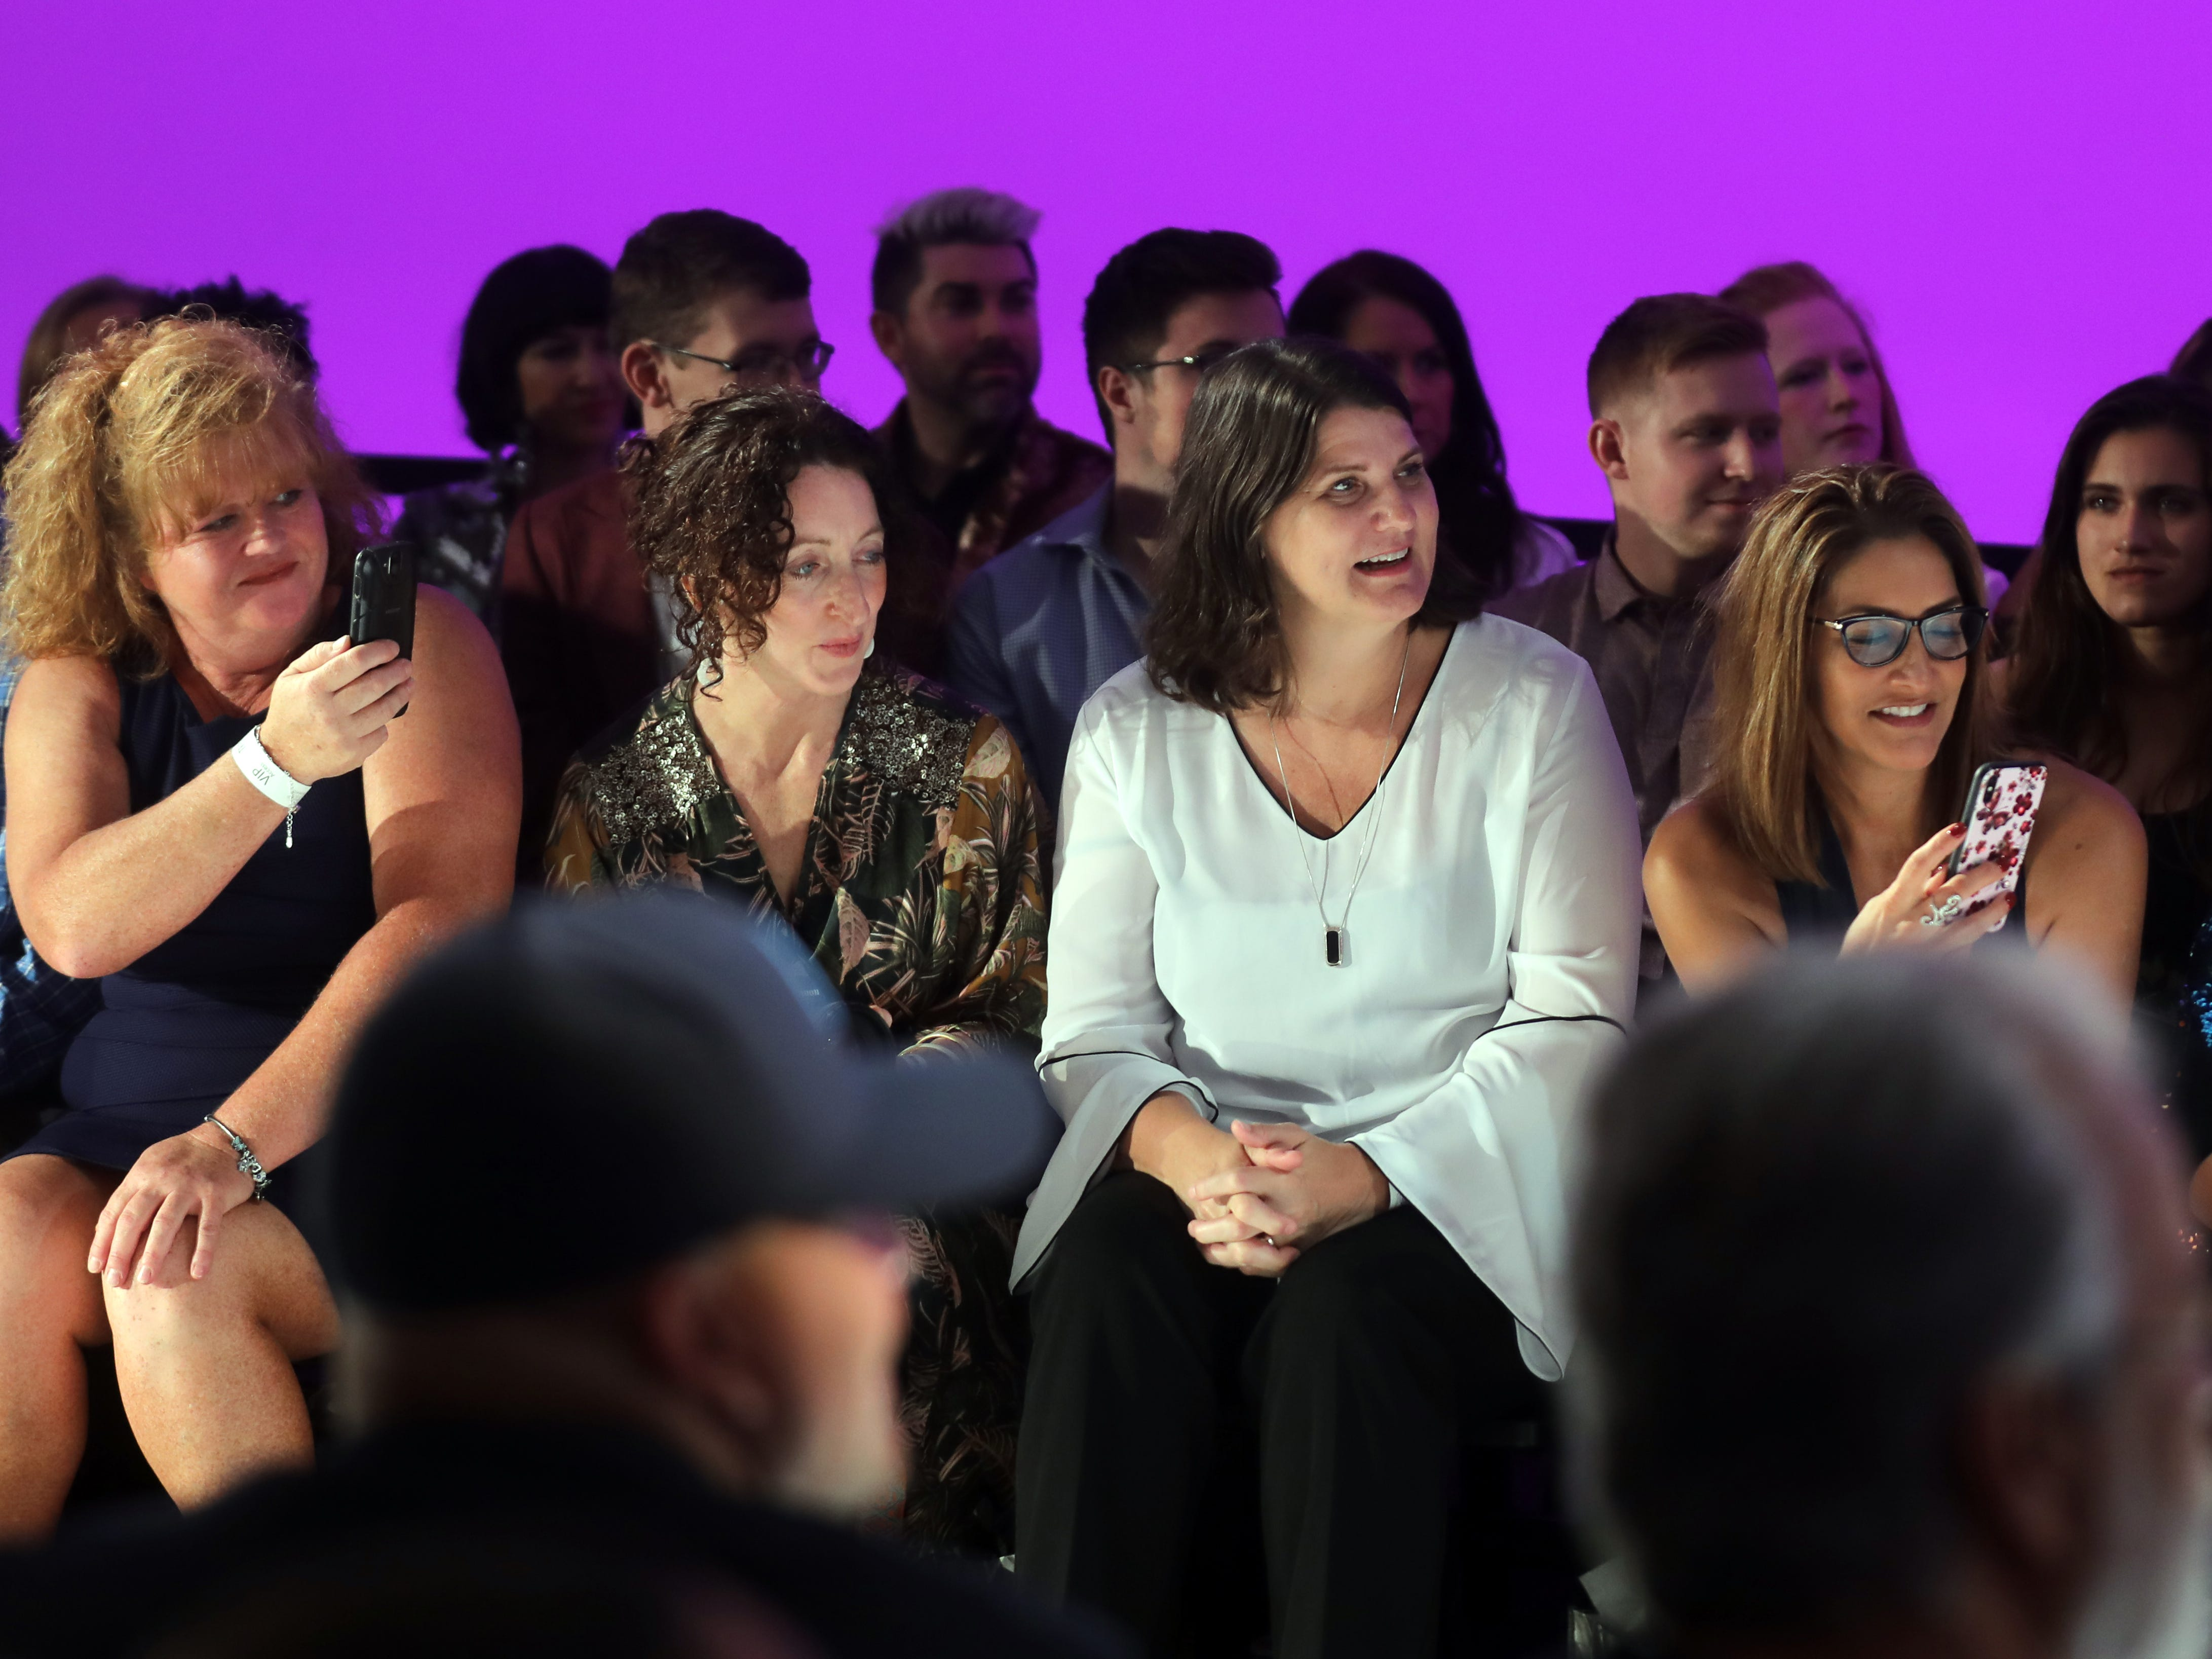 Members of the audience watch during the Boundless 2018 fashion show held at Studio 615 on Saturday, September 8, 2018.